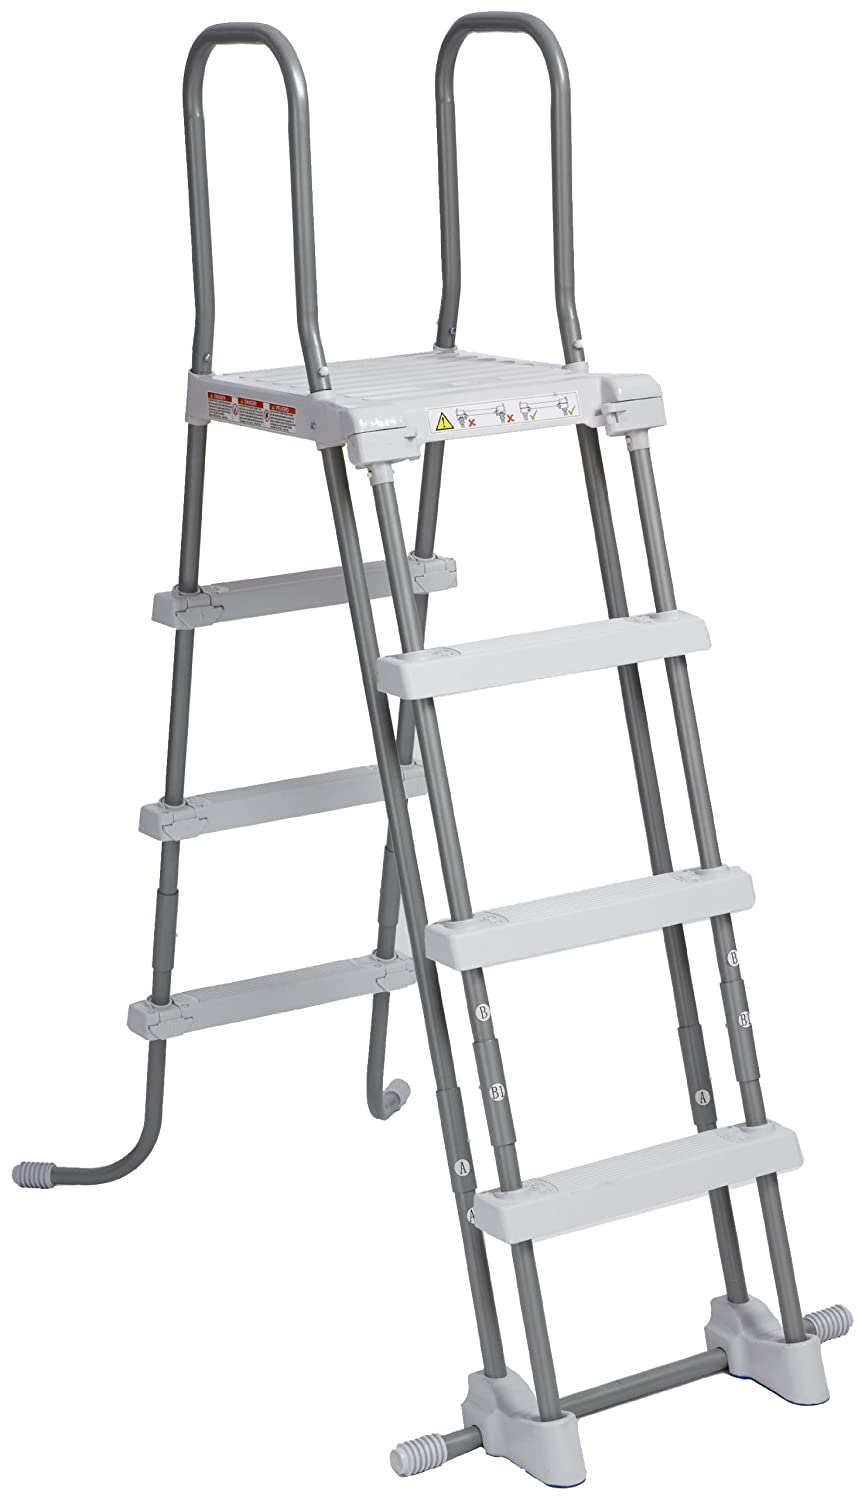 Intex deluxe pool ladder with removable steps for 36 inch for Accesorios piscinas desmontables